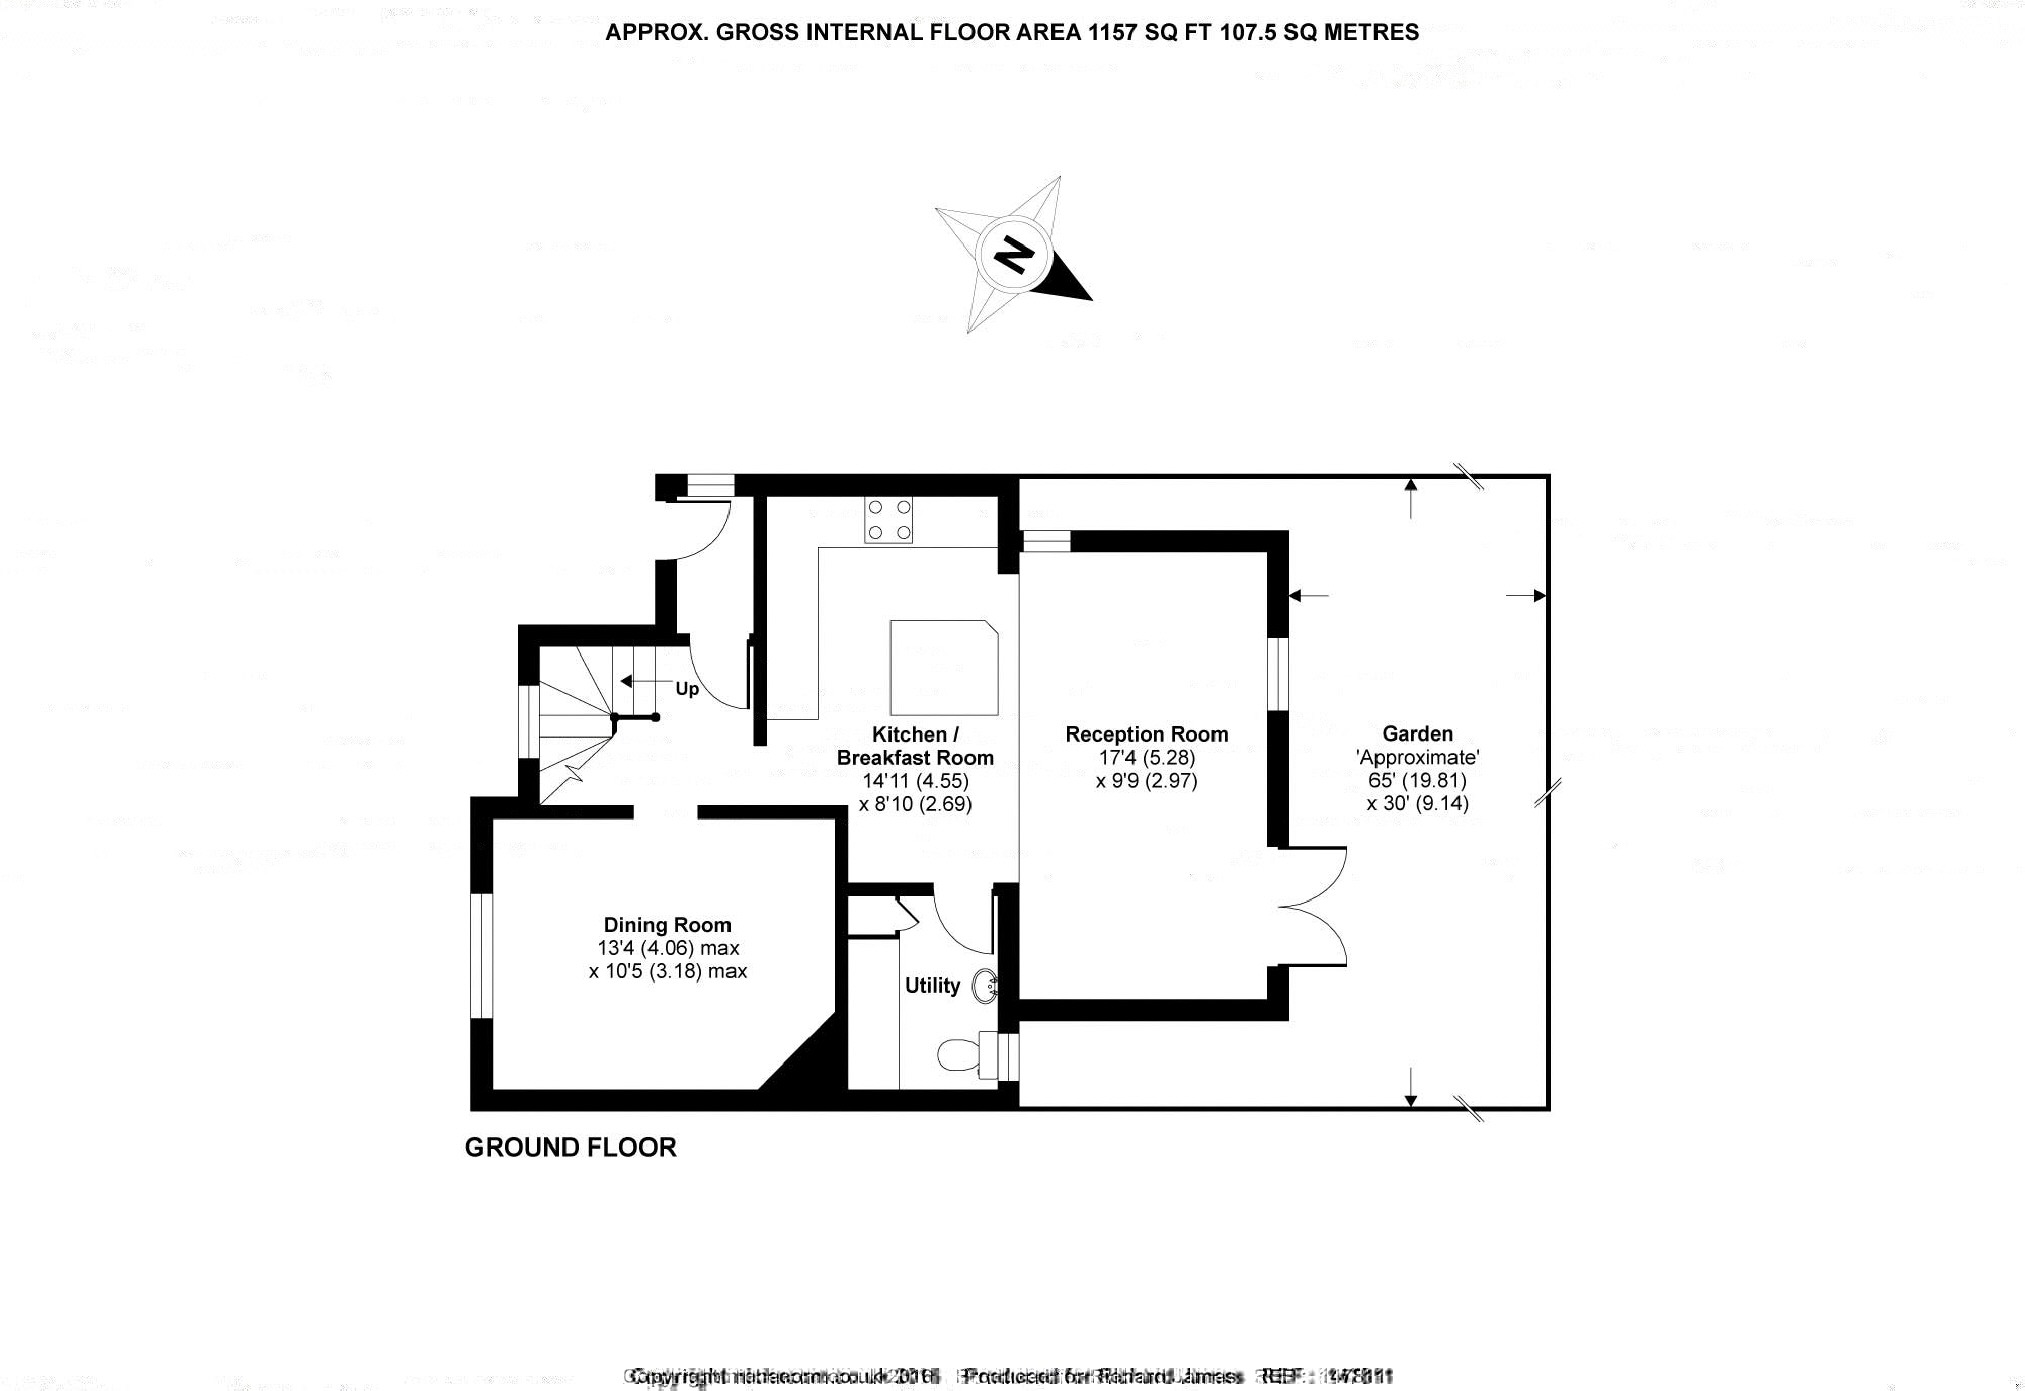 floor plans with pictures the malthouse ashbury oxfordshire sn6 3 bedroom semi 17683